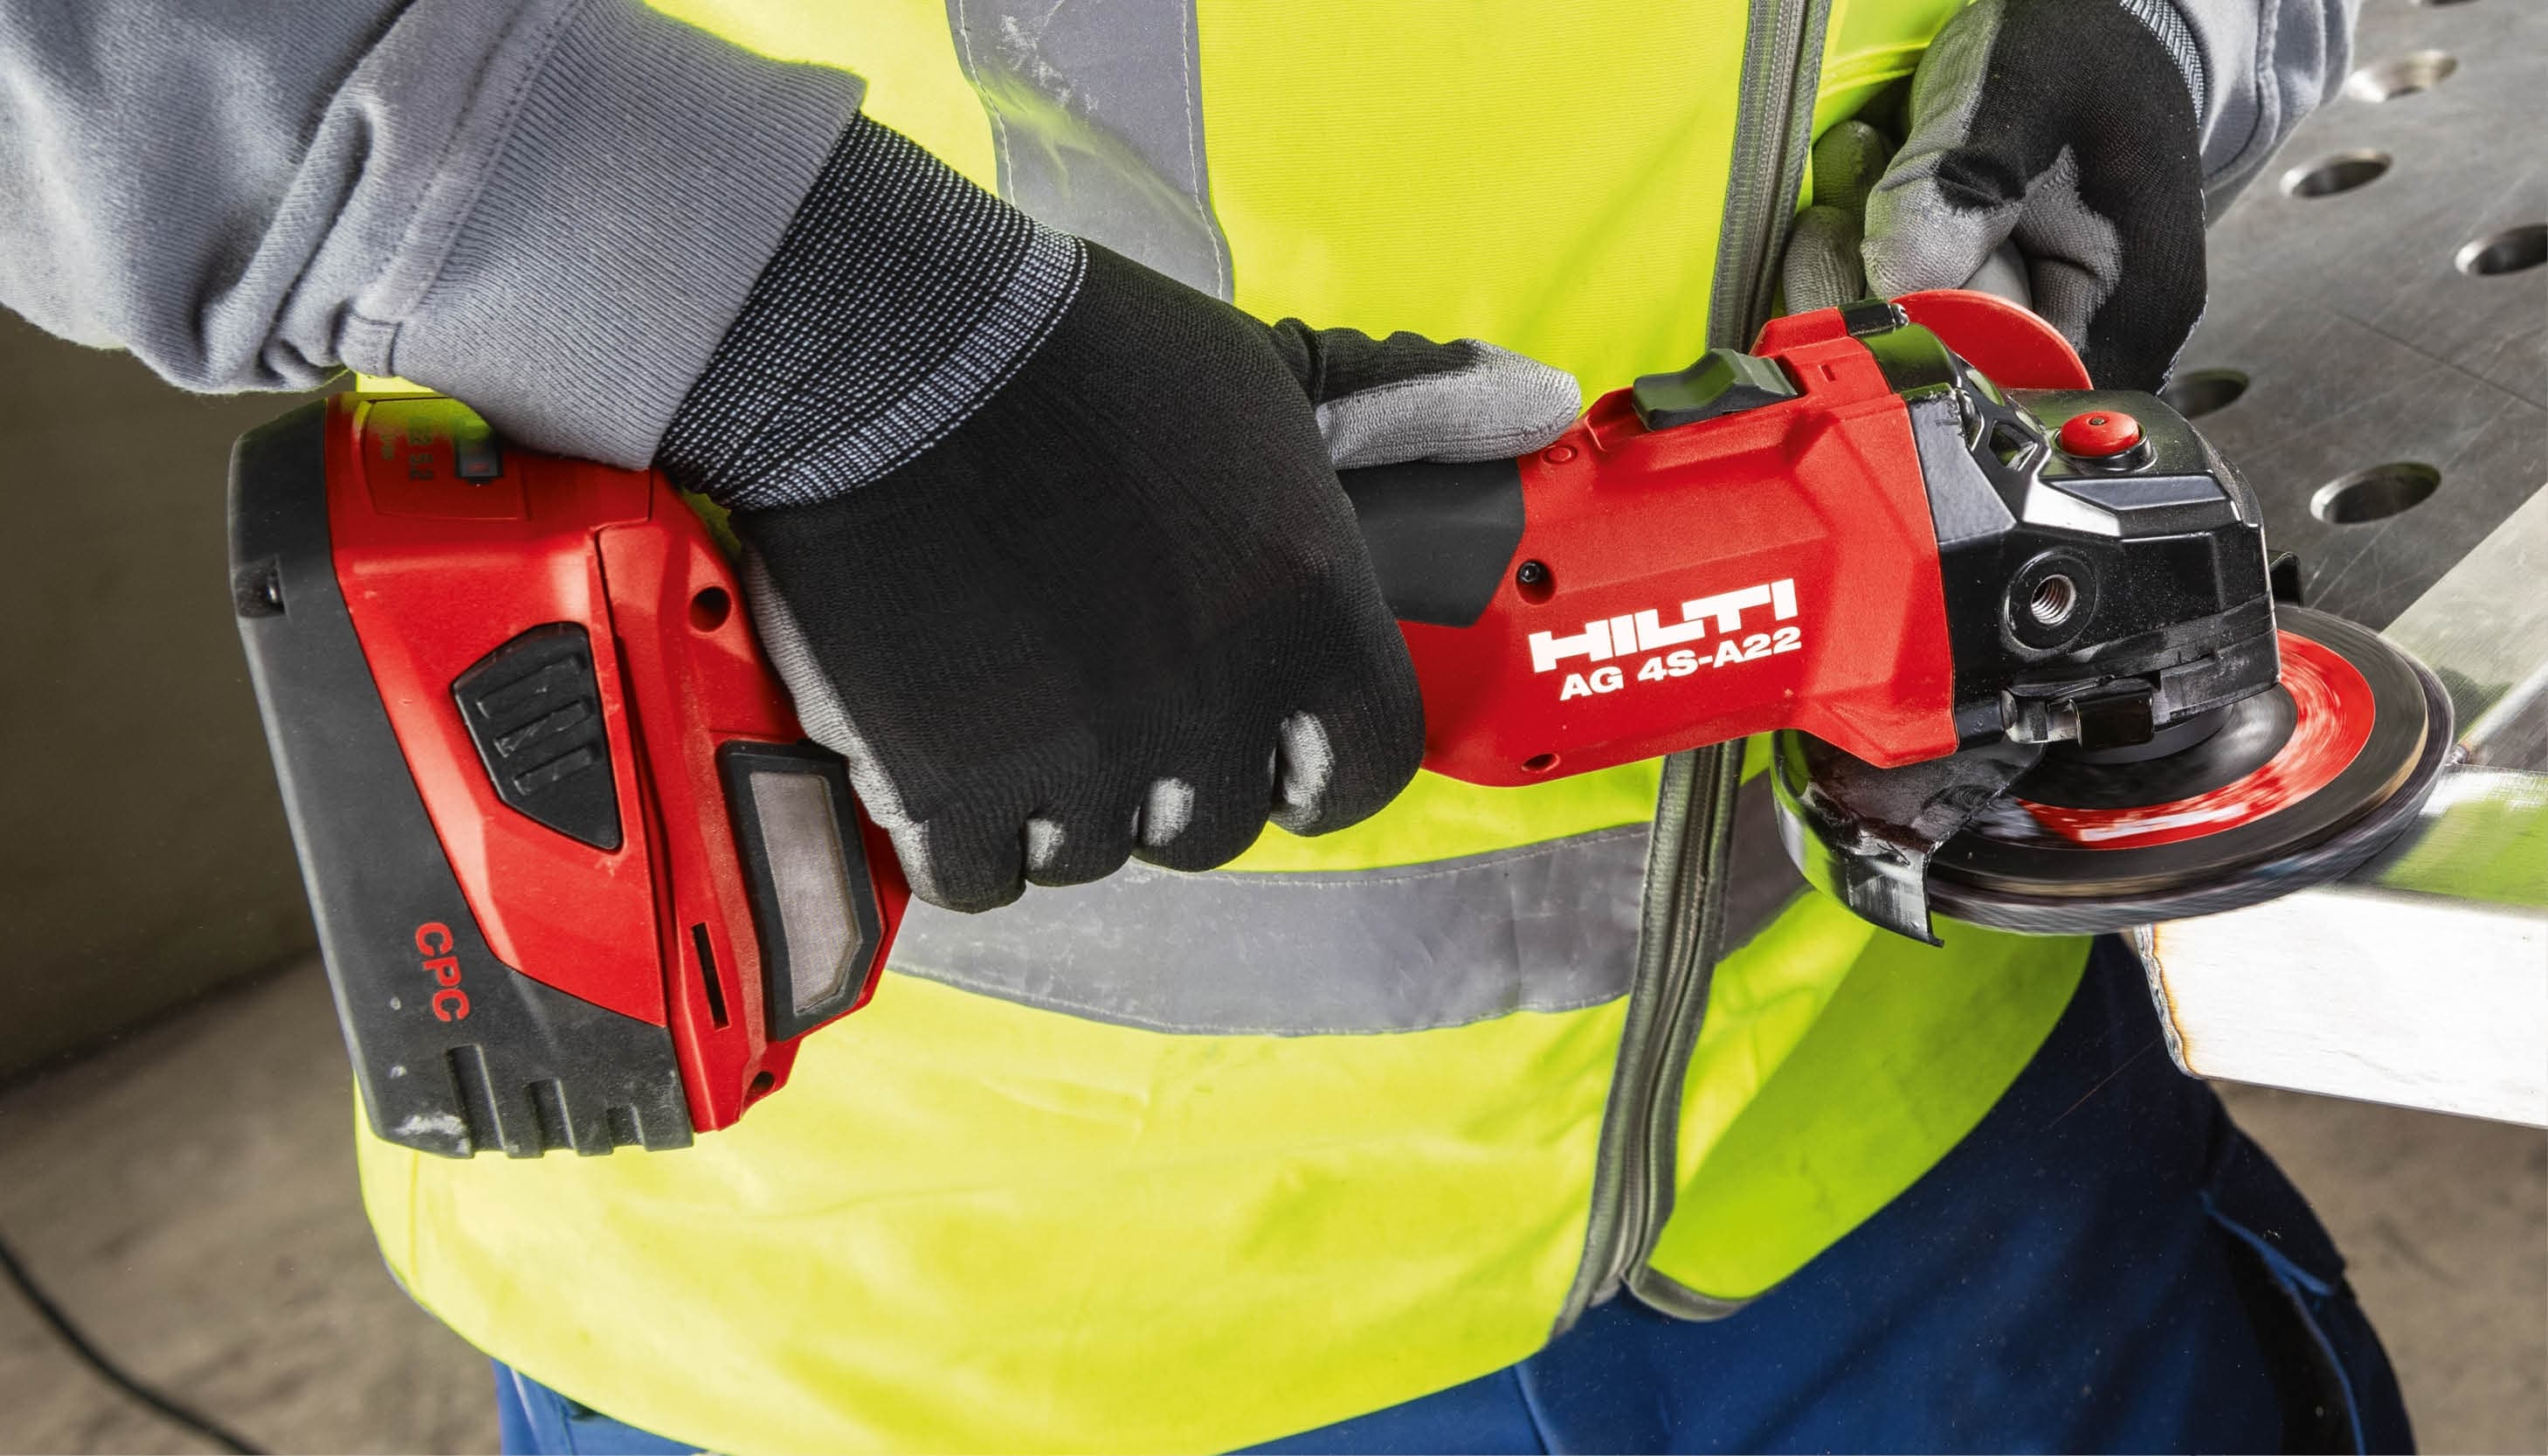 Introducing the AG 4S-A22 cordless grinder